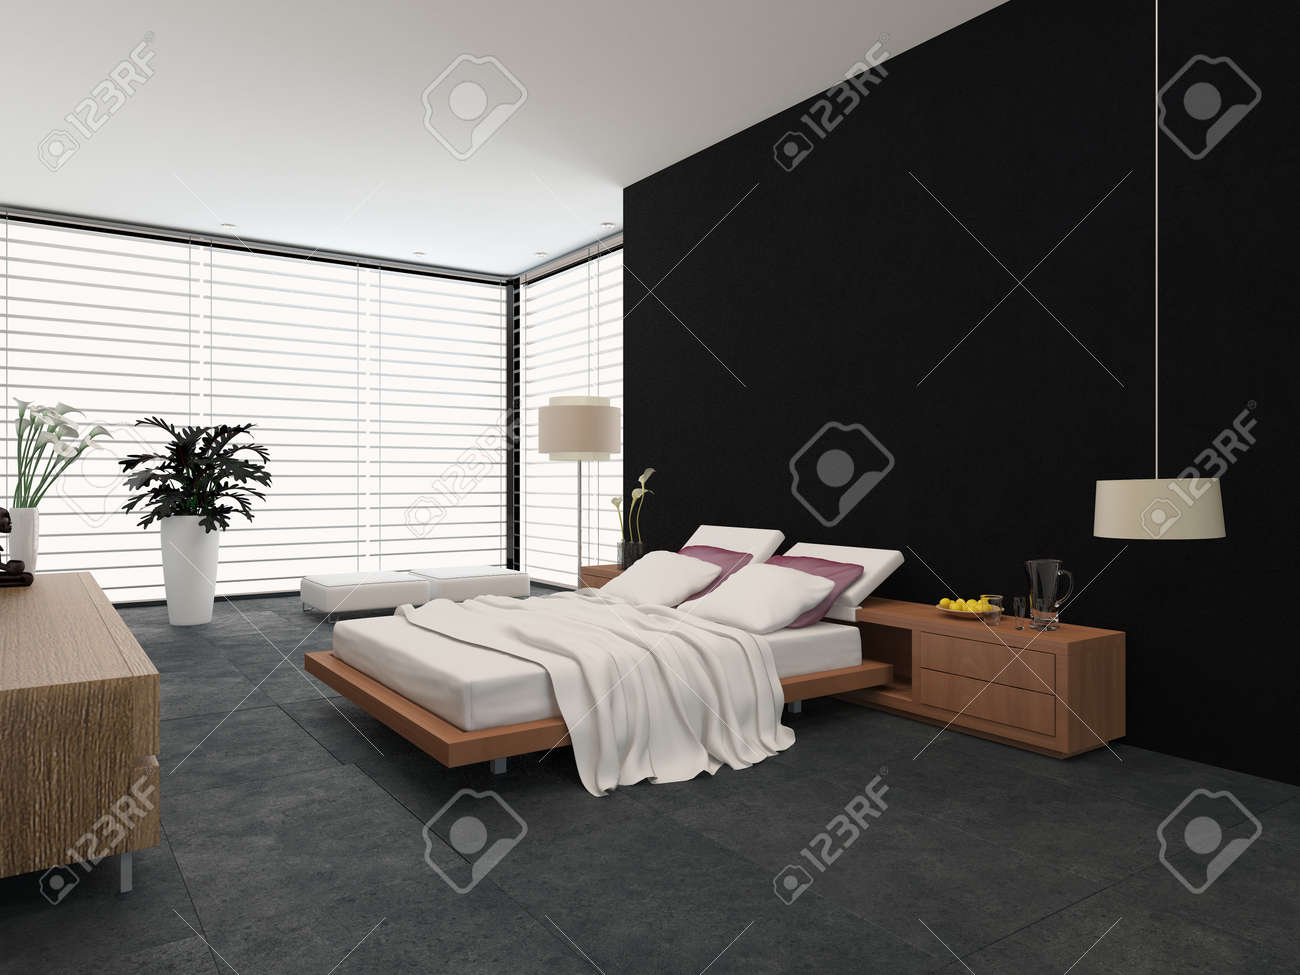 Stehlampe Schlafzimmer Stock Photo